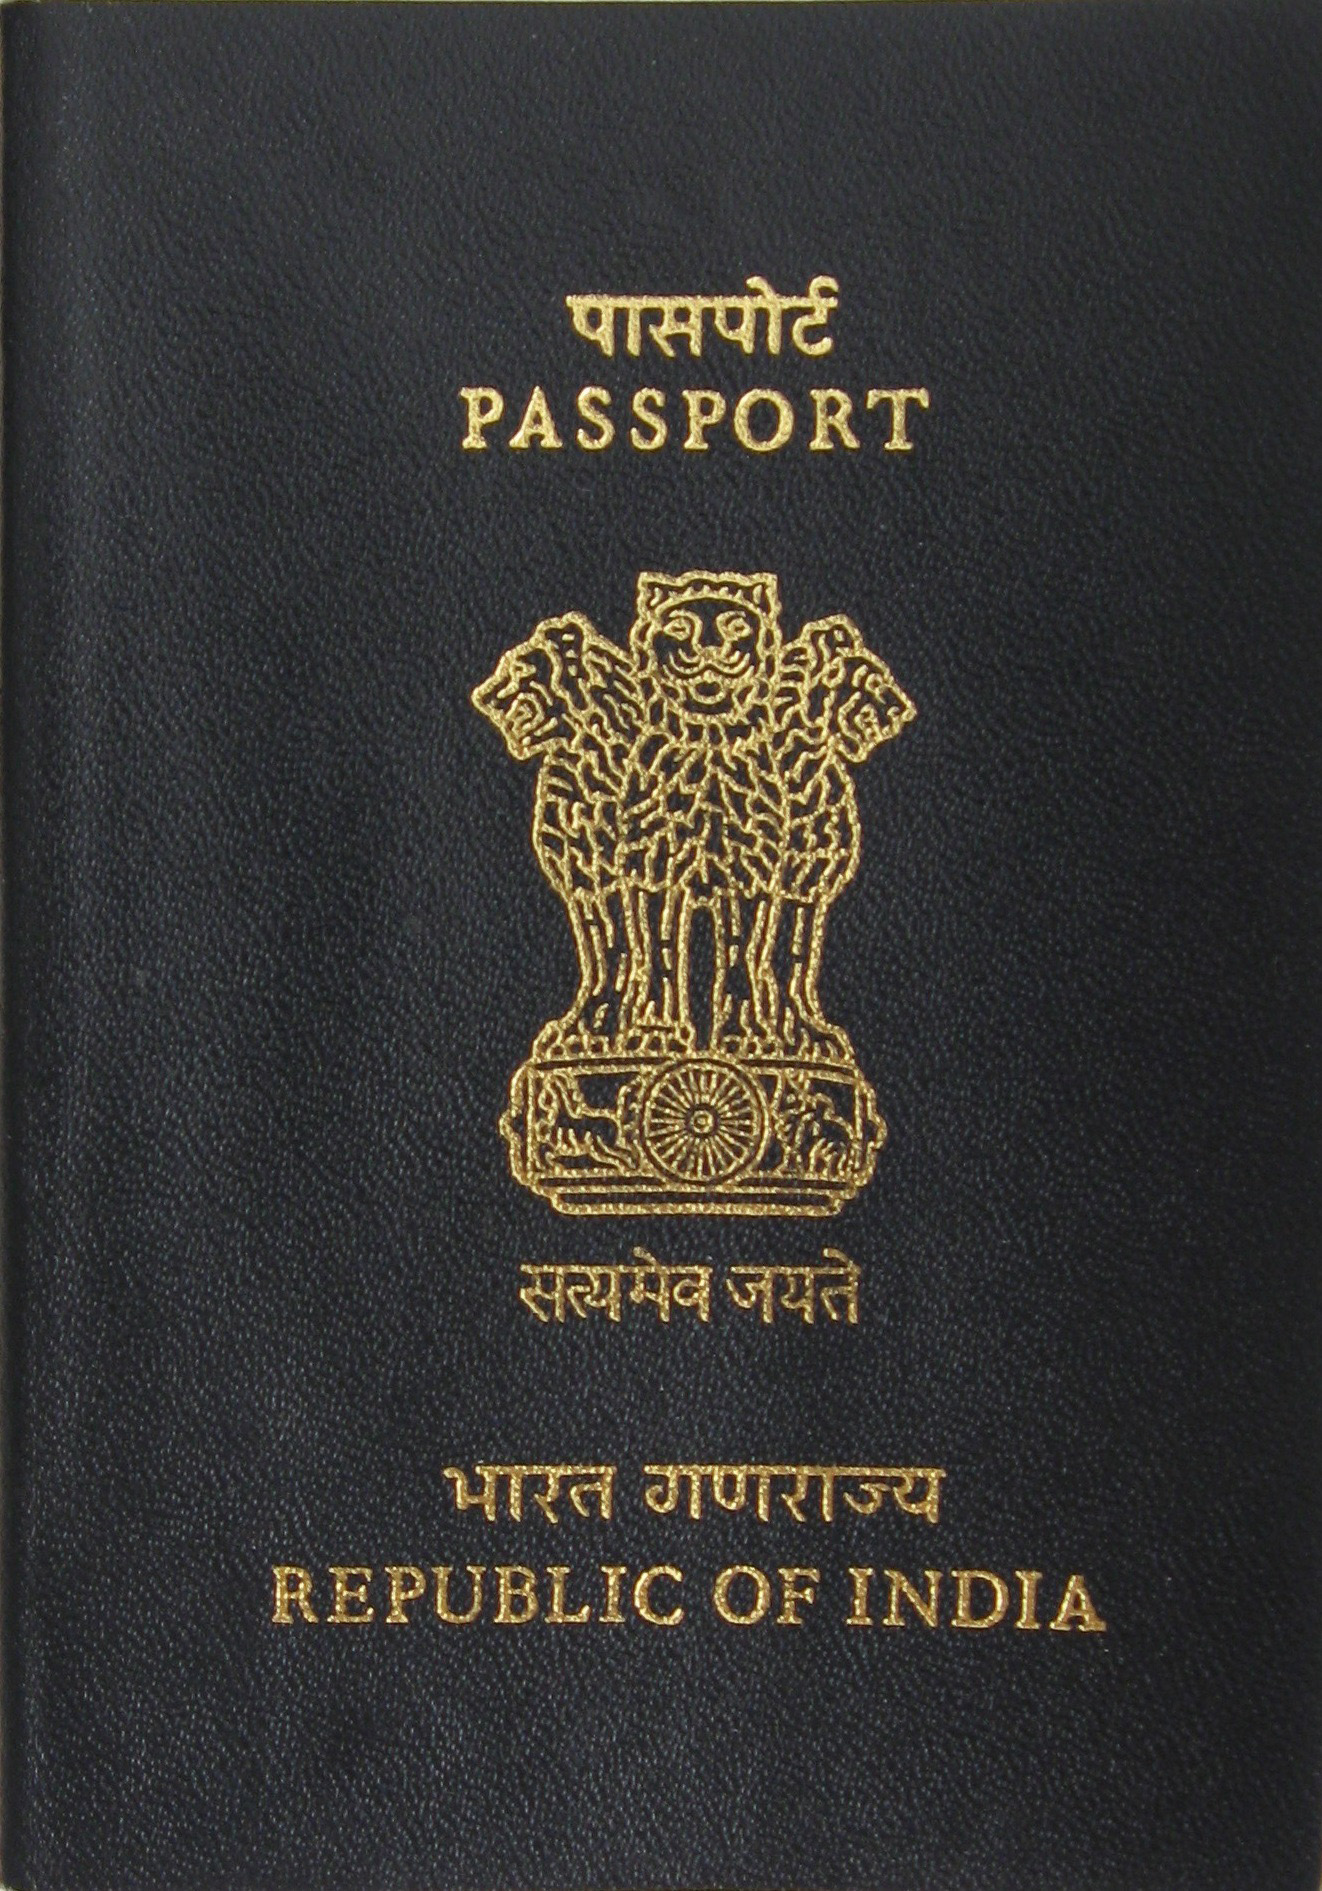 How To Get A Passport in india